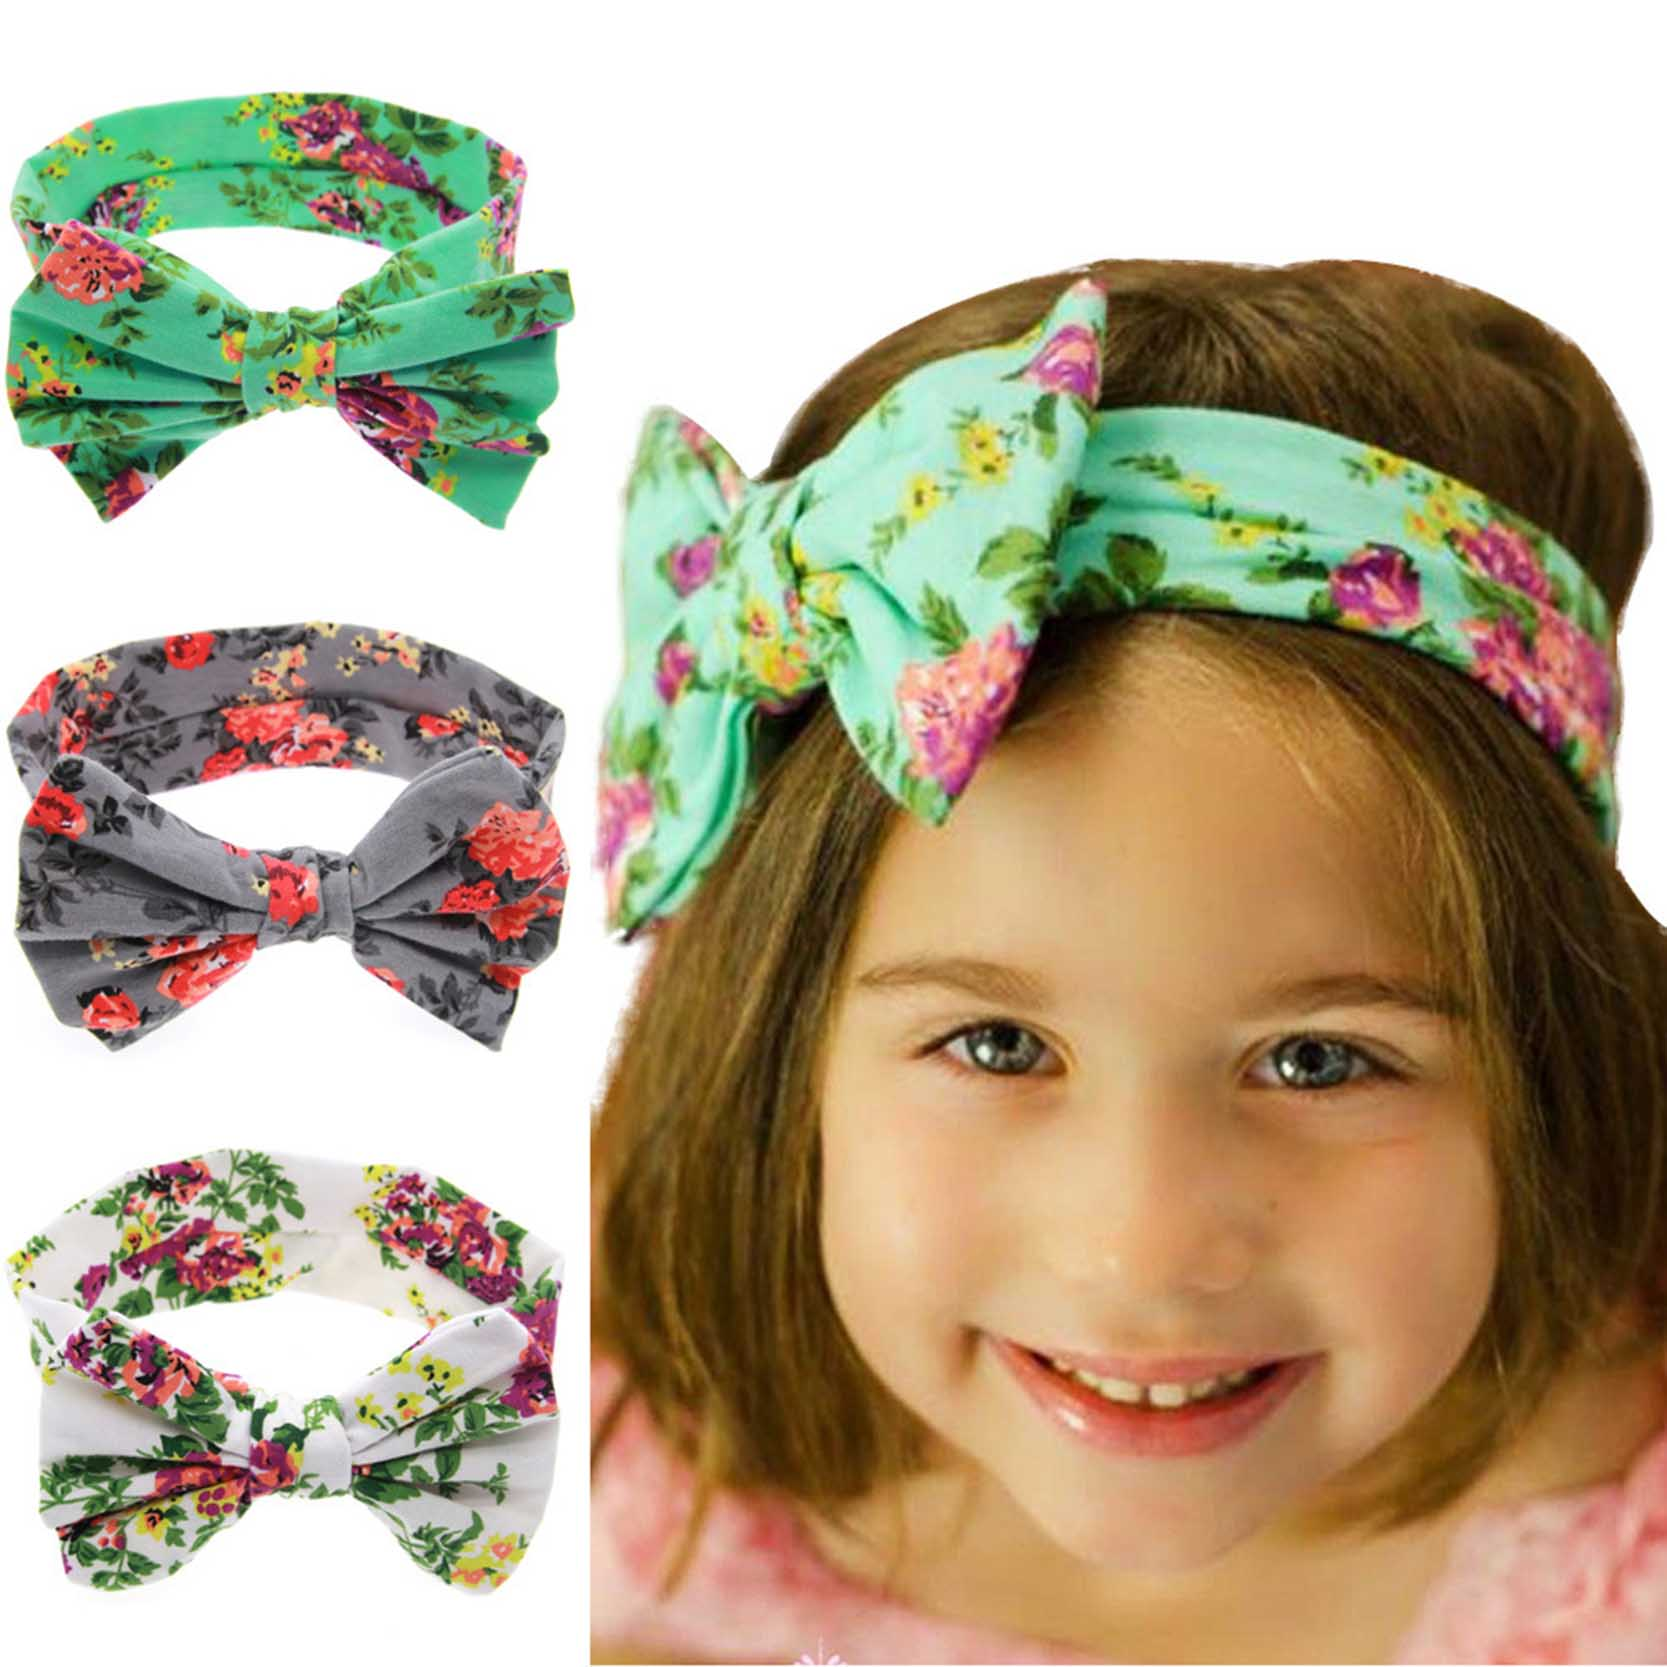 3 Colors Bow Shaped Baby Girl Hair Accessiories Newborn Infant Headband Floral Printed<br><br>Aliexpress